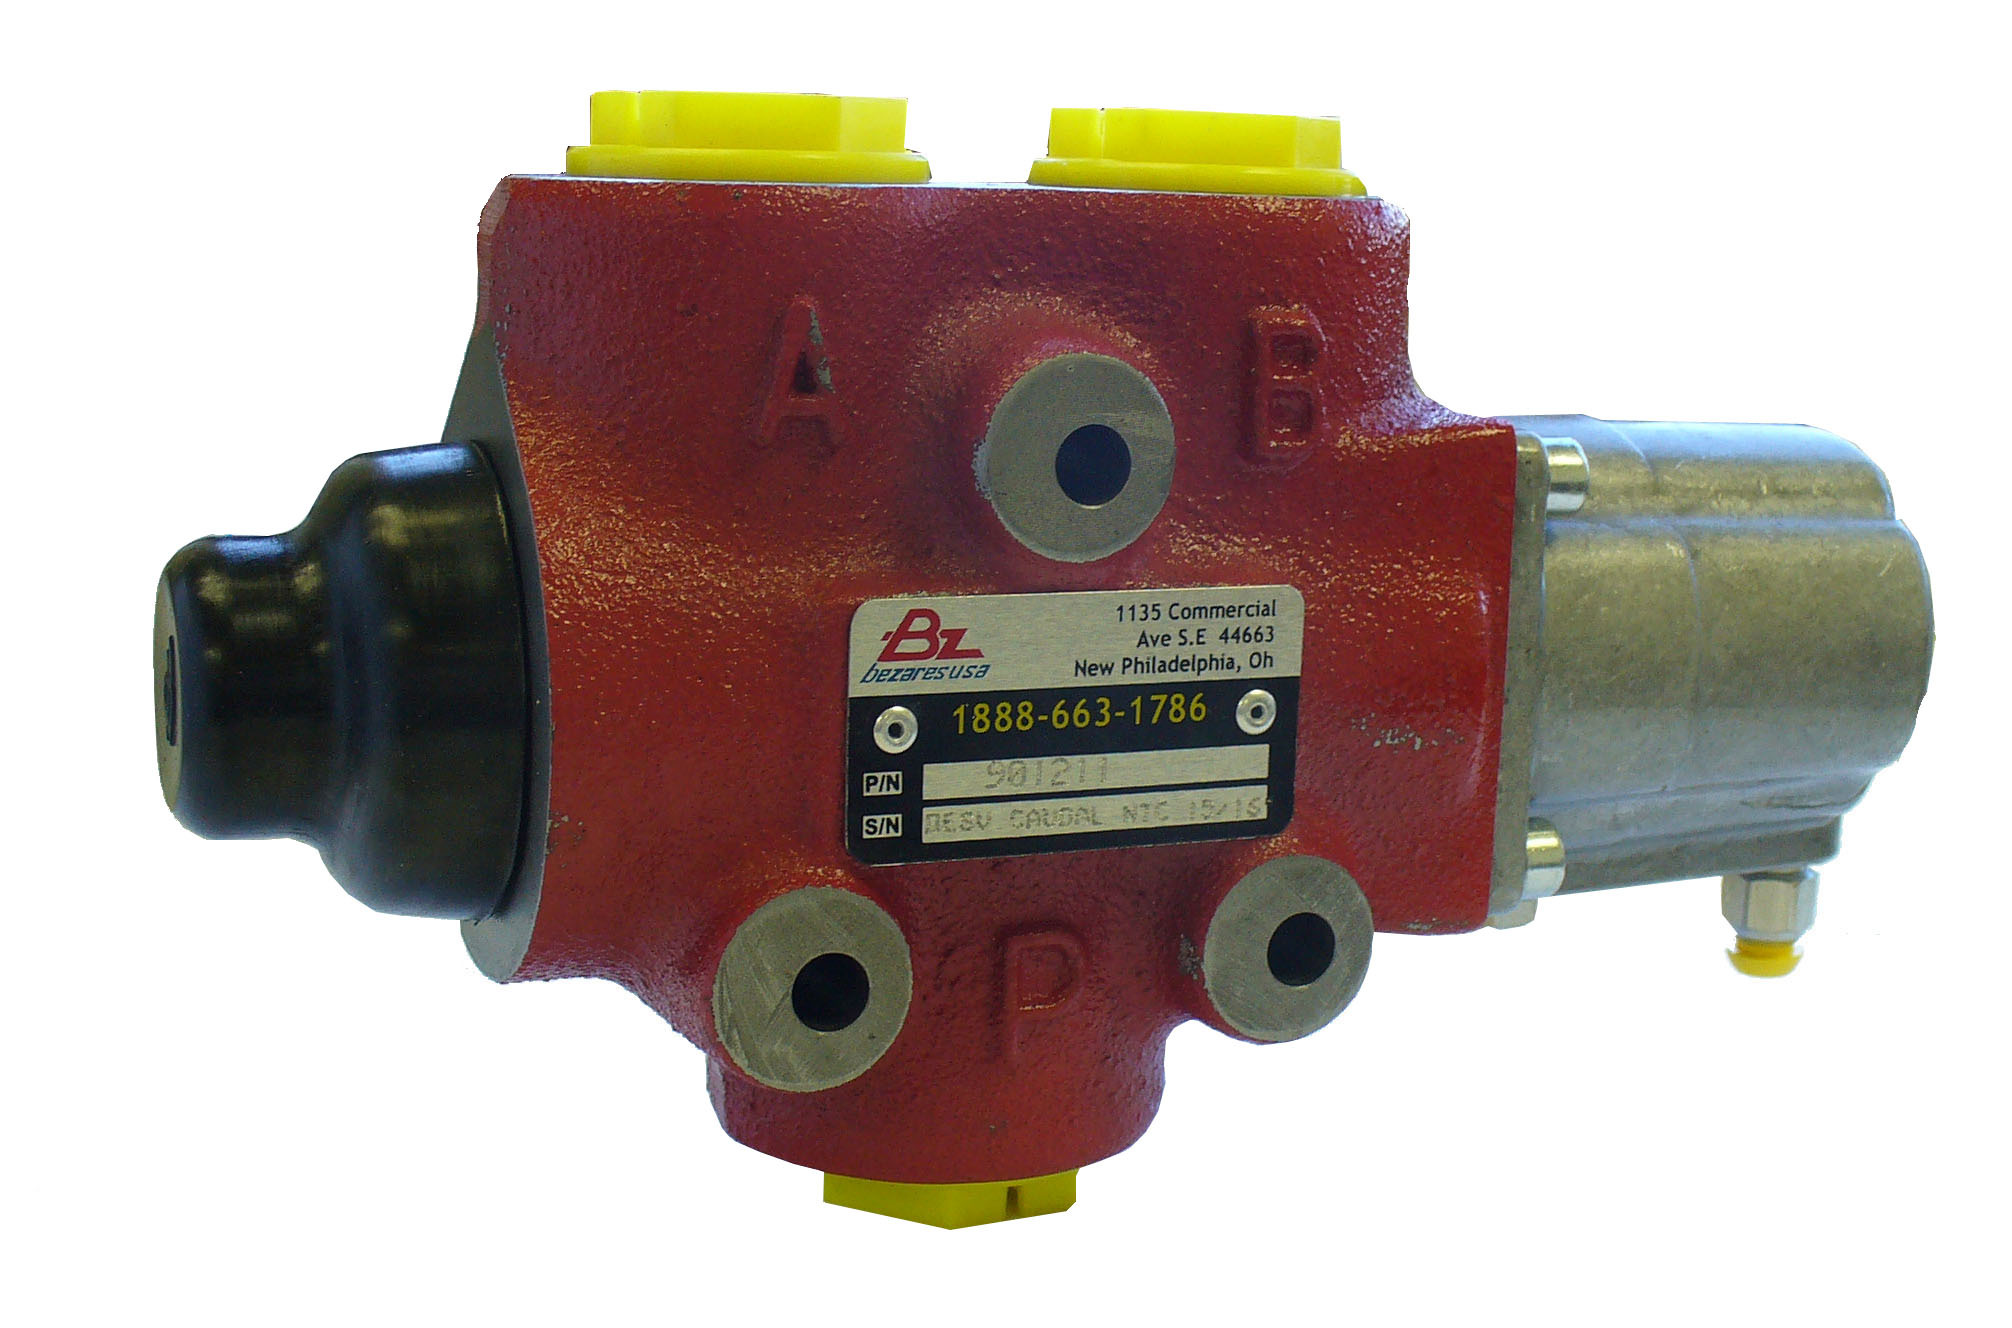 3 Way Pneumatic Diverter Valve - Bezares - Bezares 3 Way Pneumatic Diverter Valve